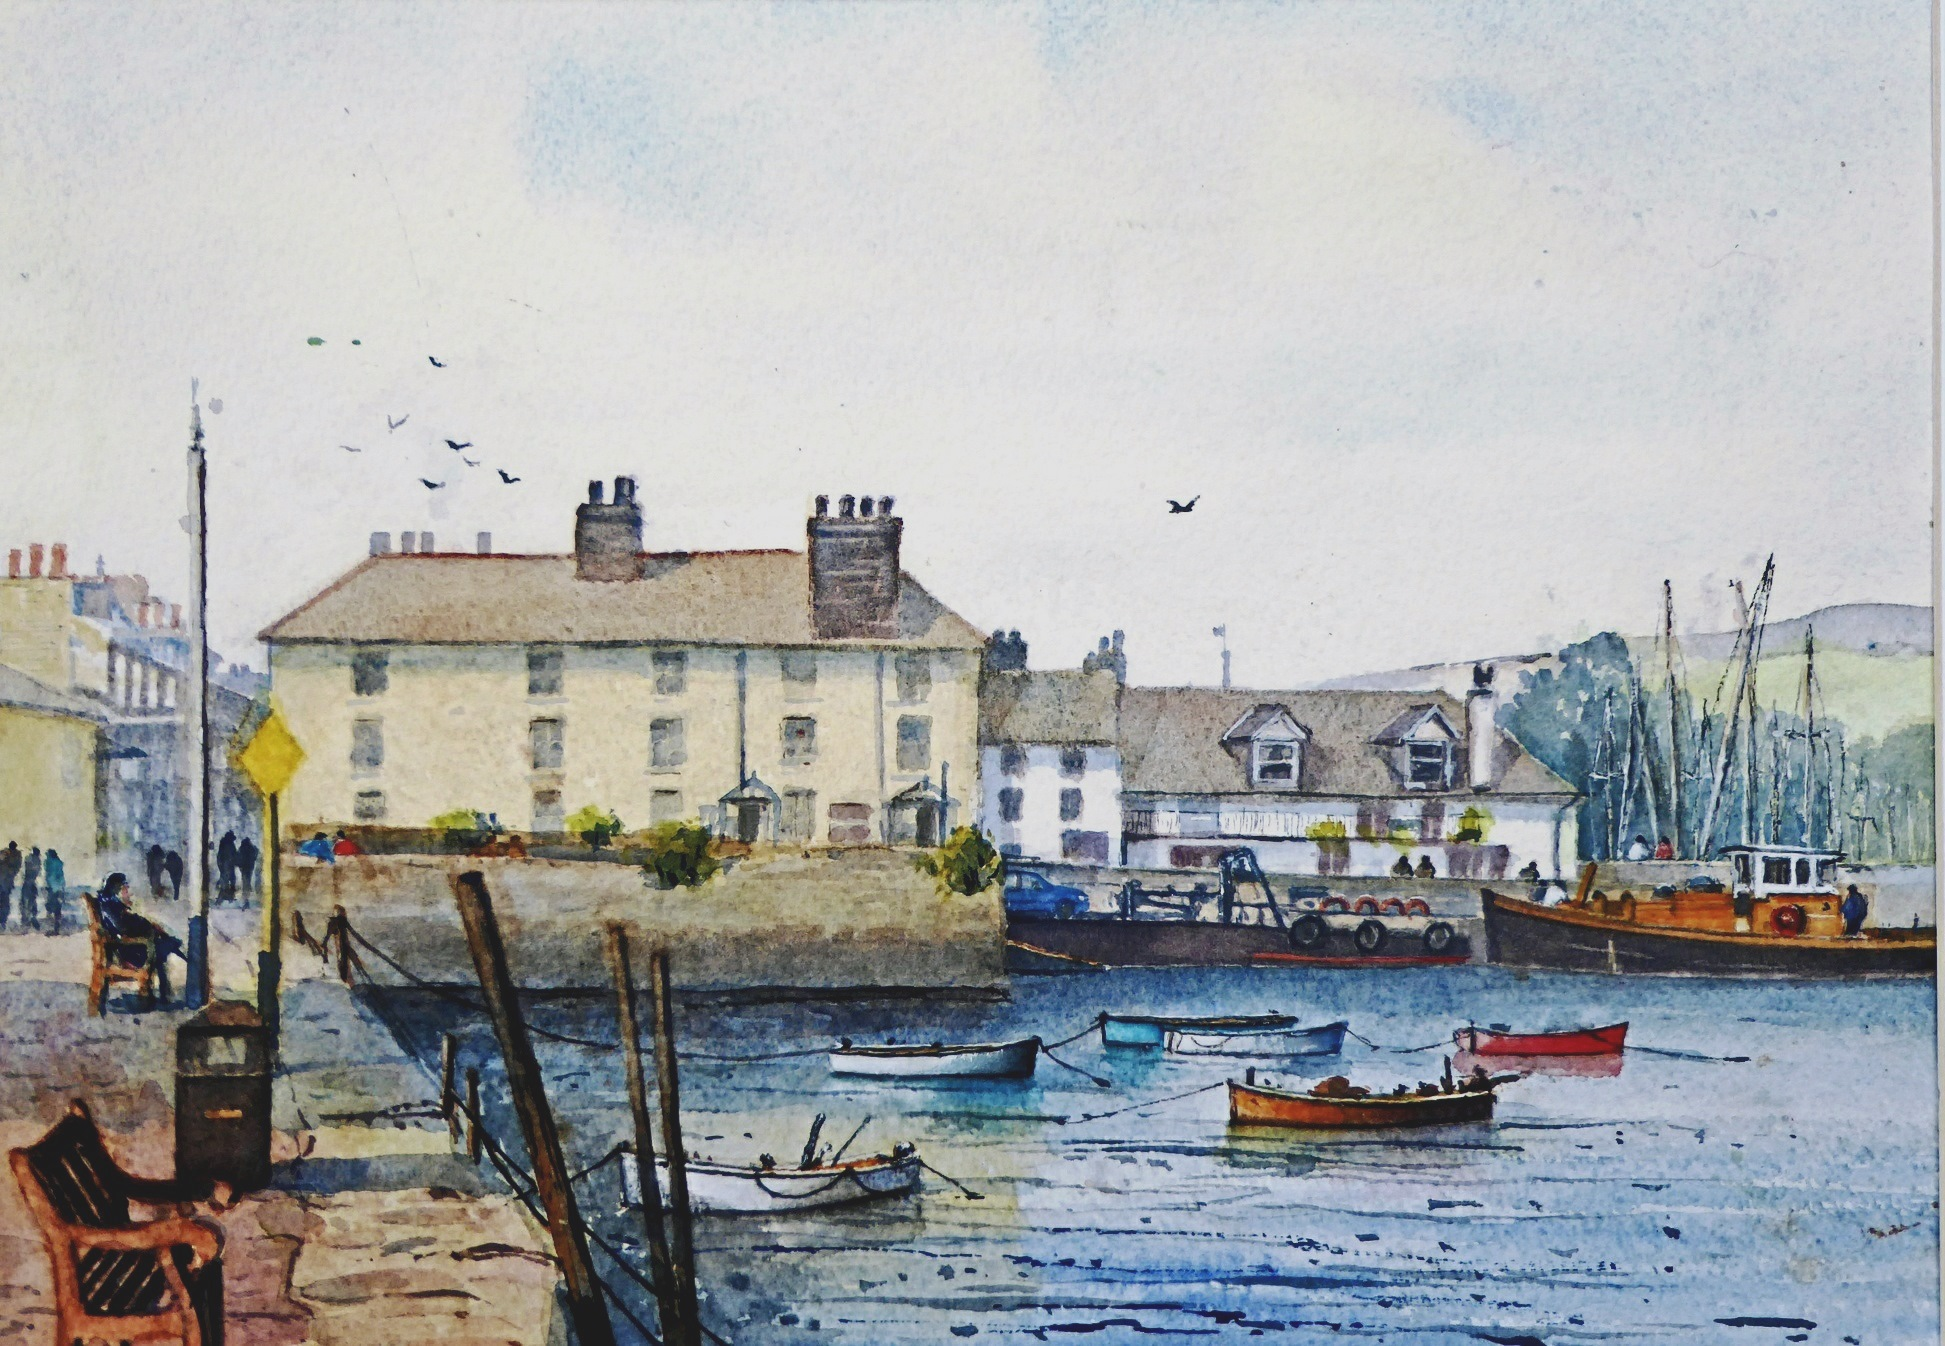 George Loades, Bayards Cove Dartmouth, whose work is being shown at the RBSA gallery.